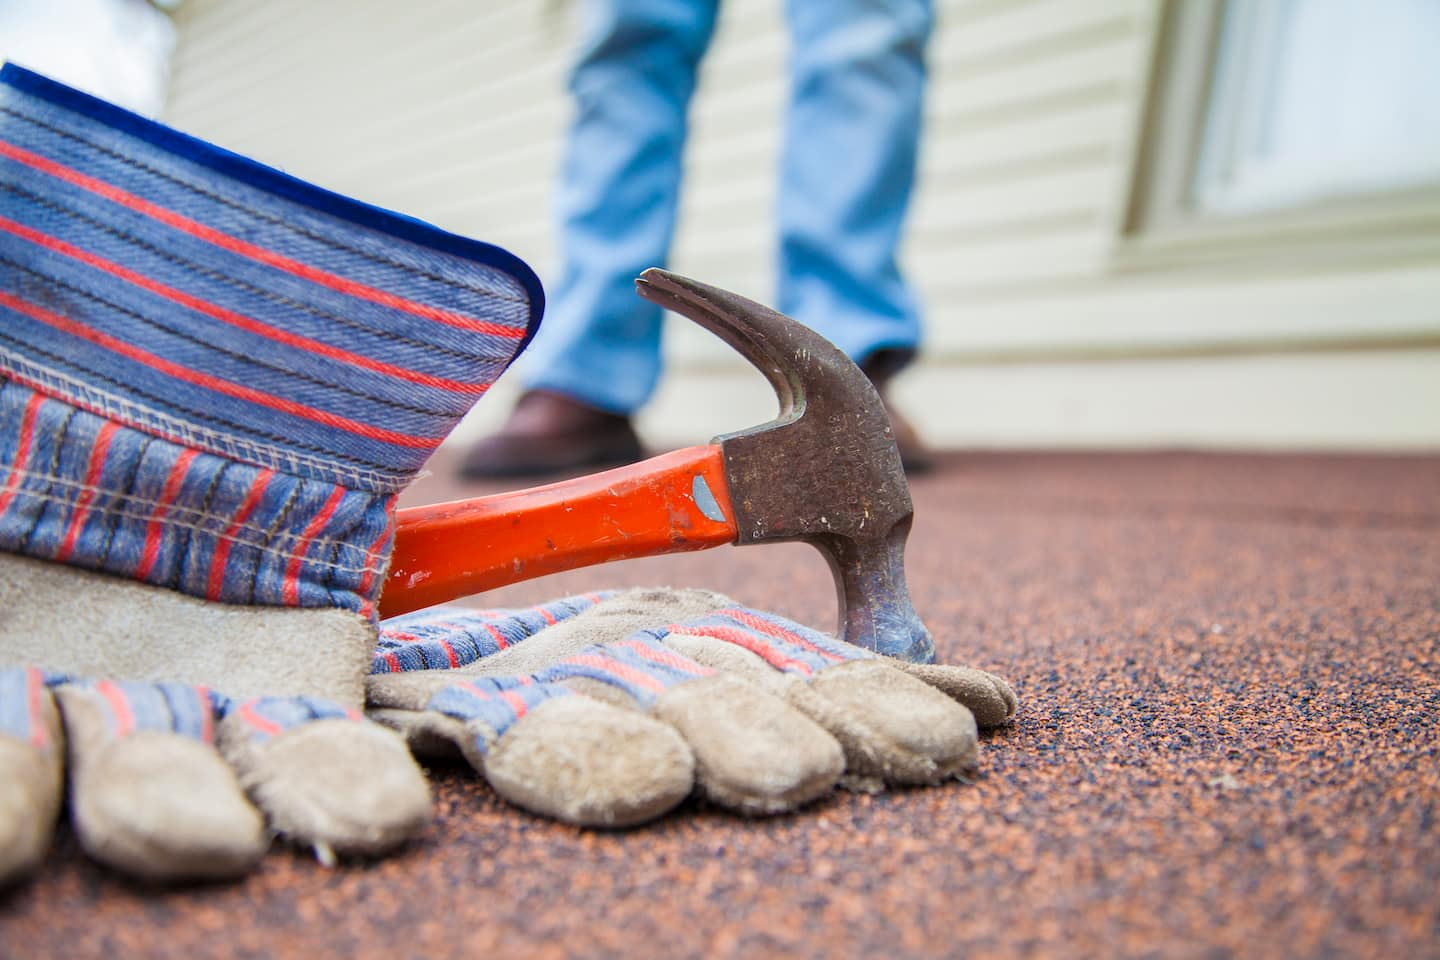 How to Complain to Contractors Effectively | Angie's List